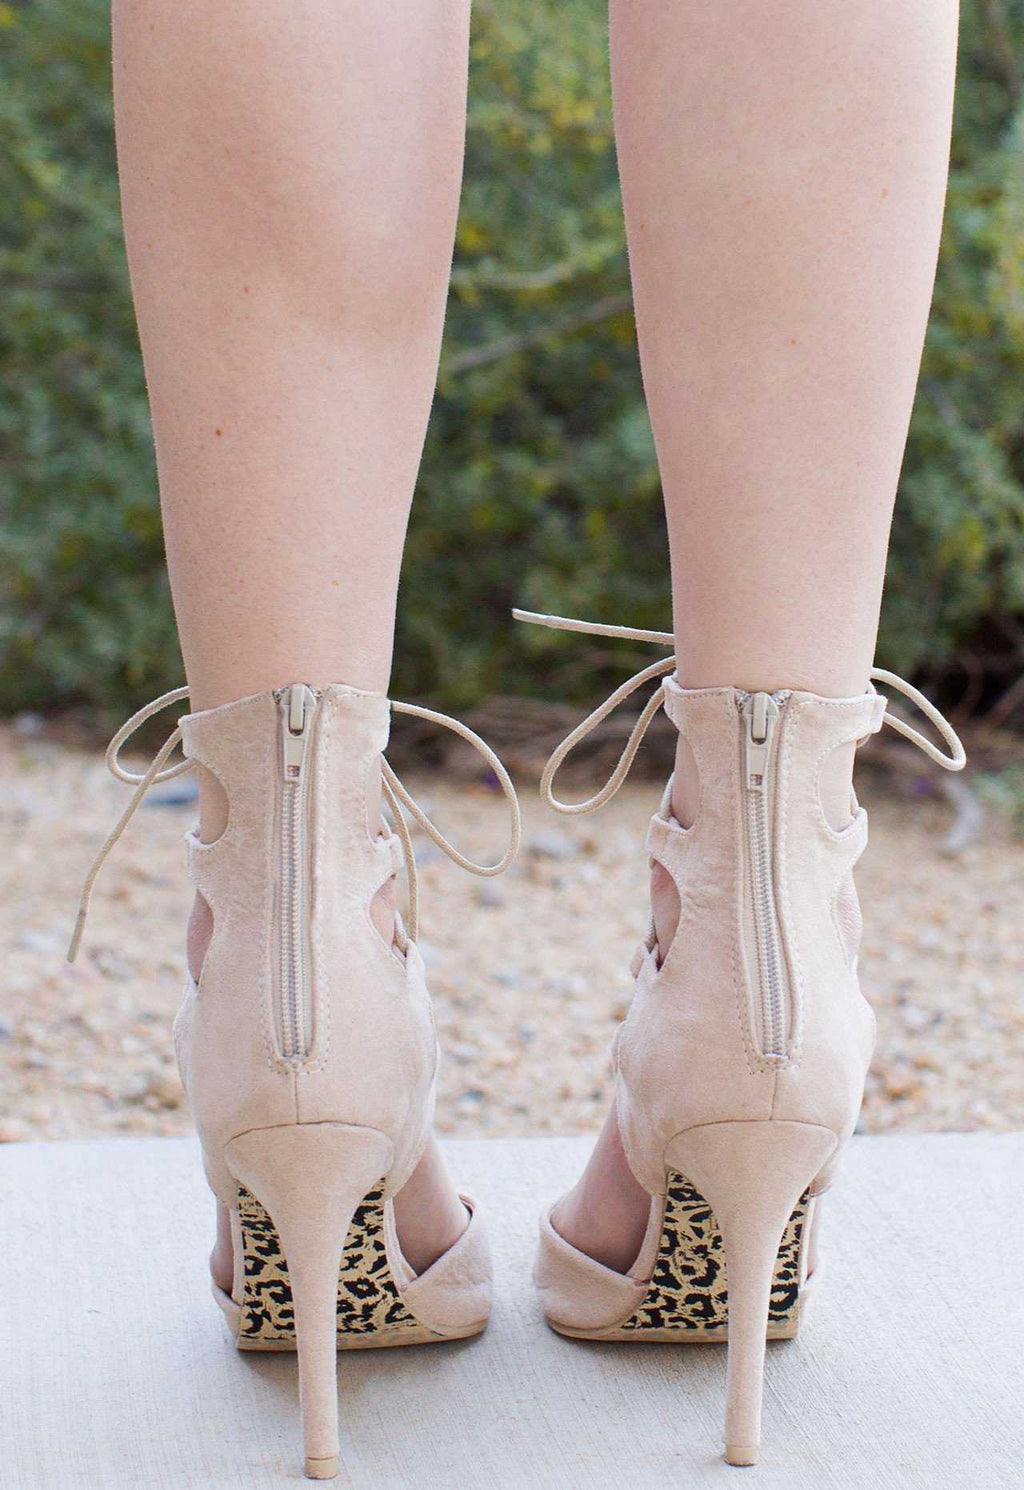 Shoes - Khaleesi Queen Lace Up Heels - Ivory